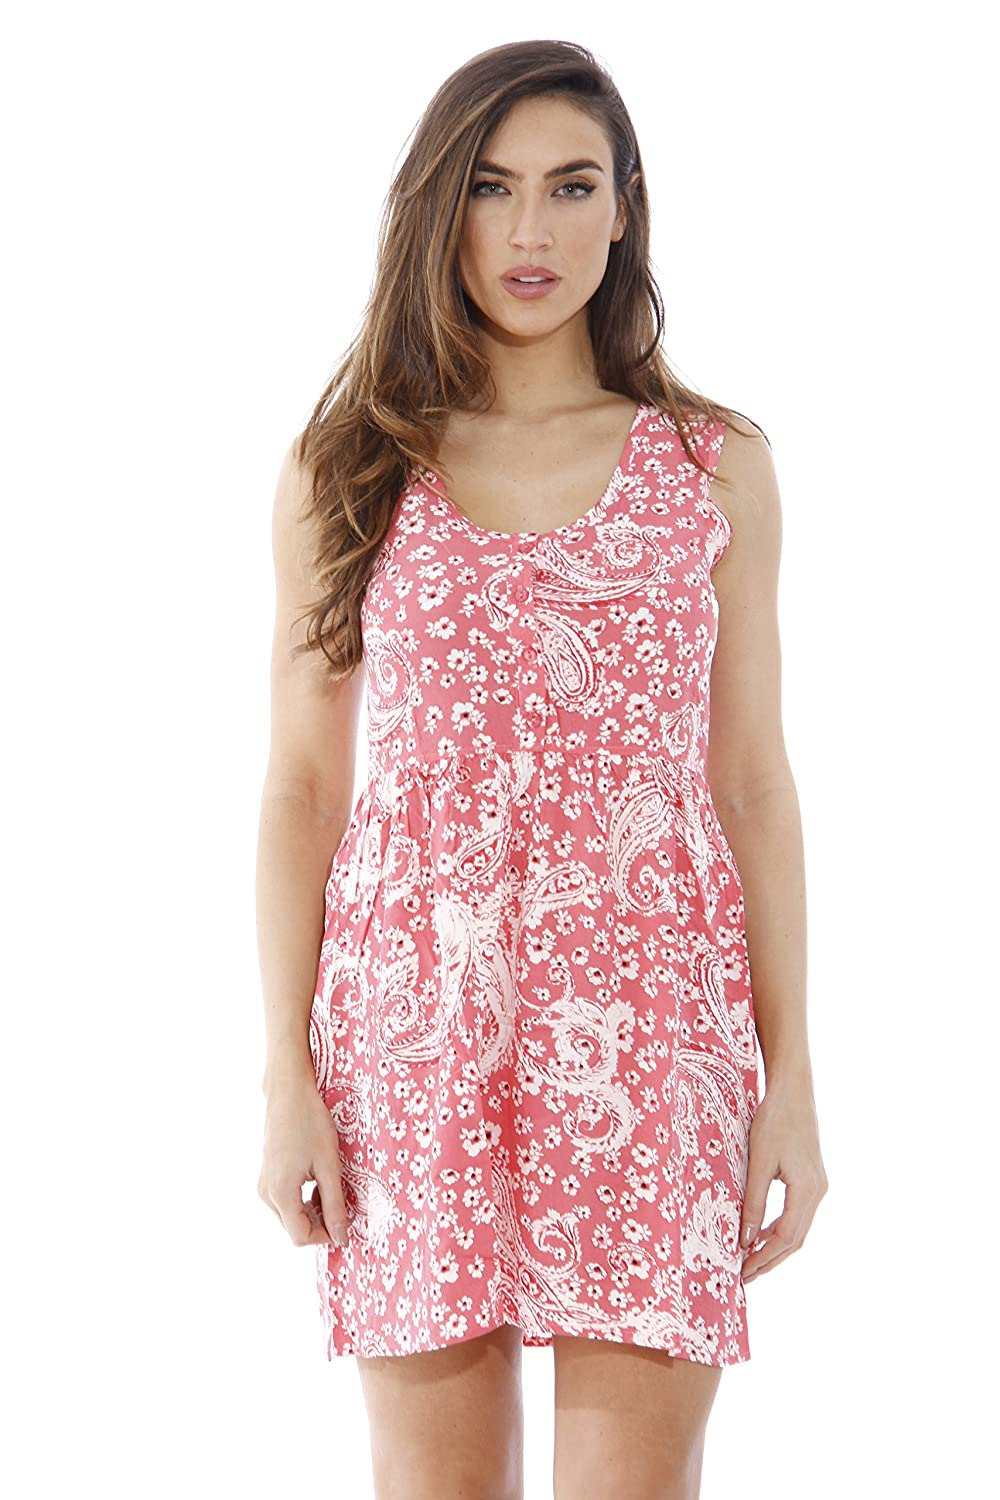 a22f7aca6 Just Love AMZ5946-COR-L Short Dress/Summer Dresses for Juniors at Amazon  Women's Clothing store: